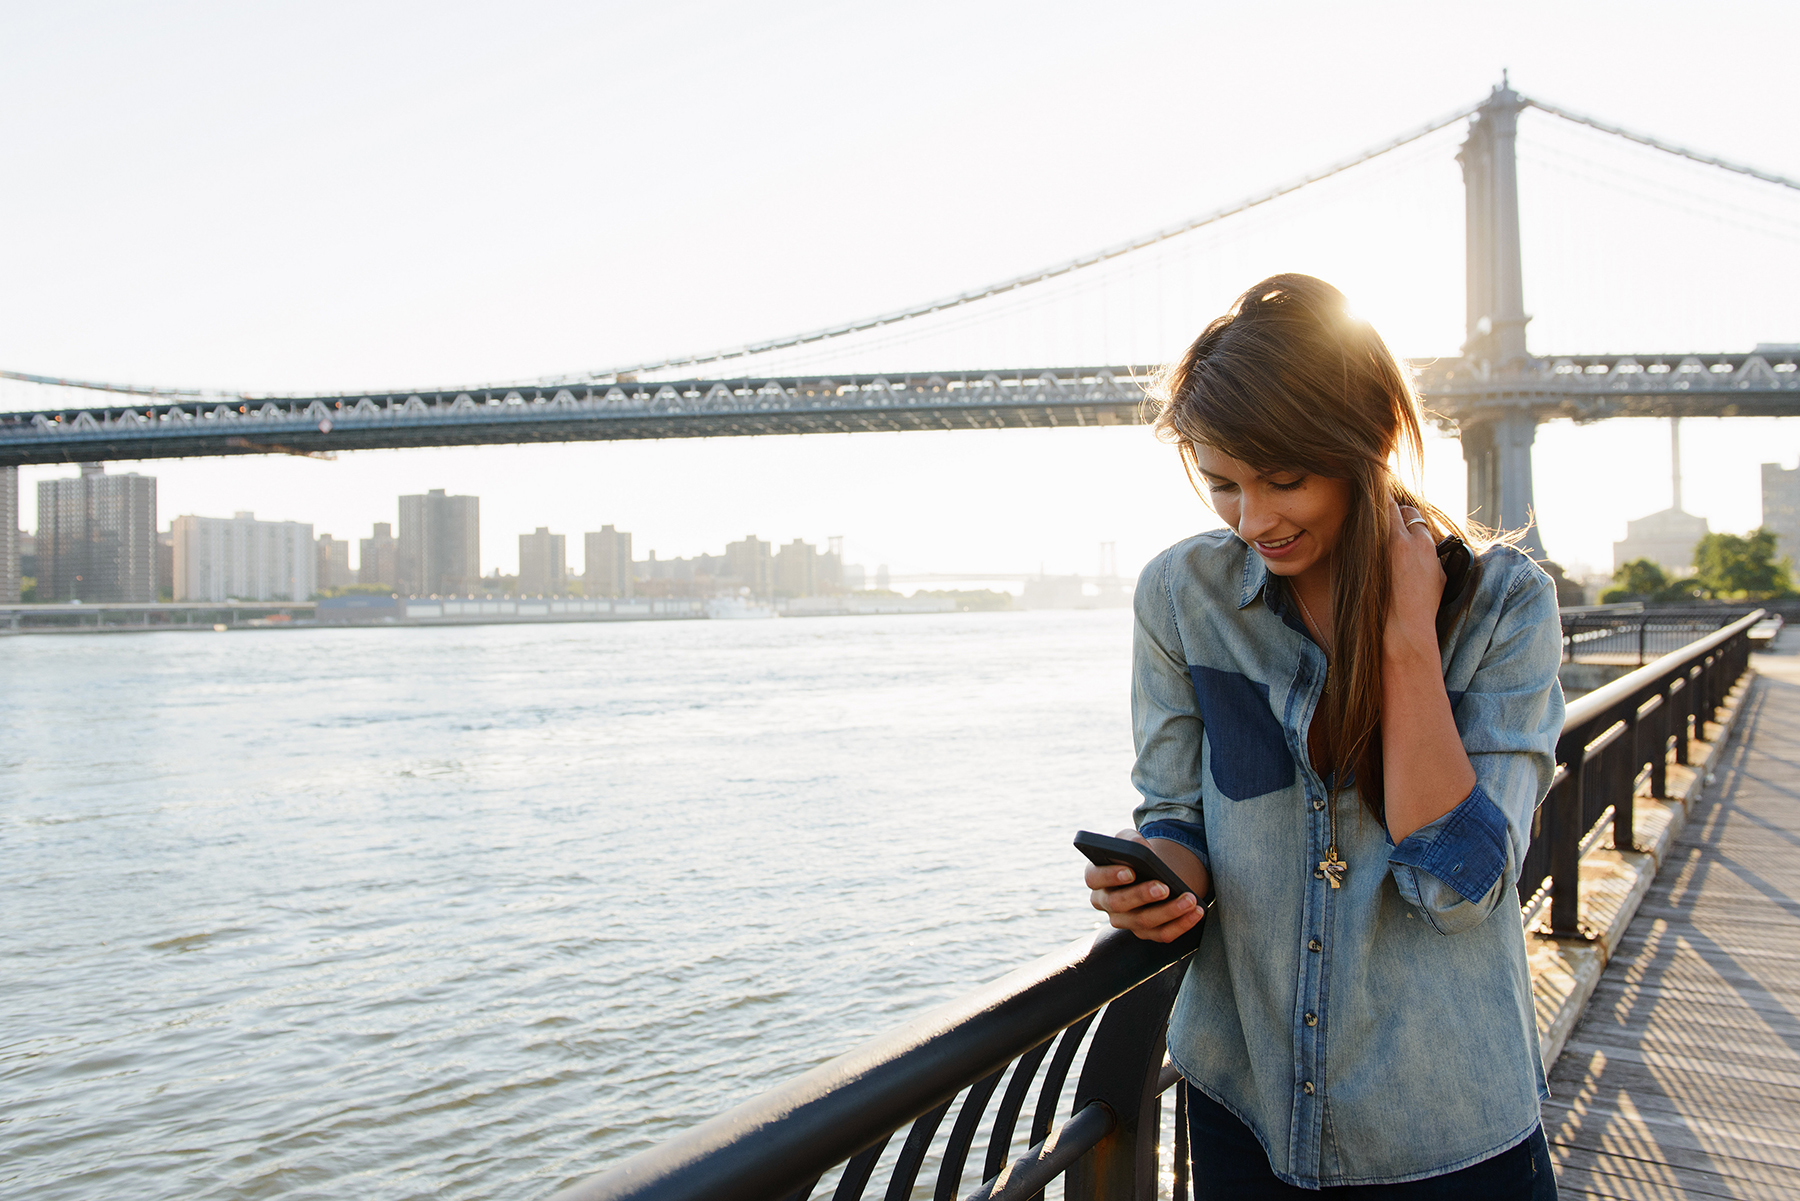 Woman in NYC with smartphone